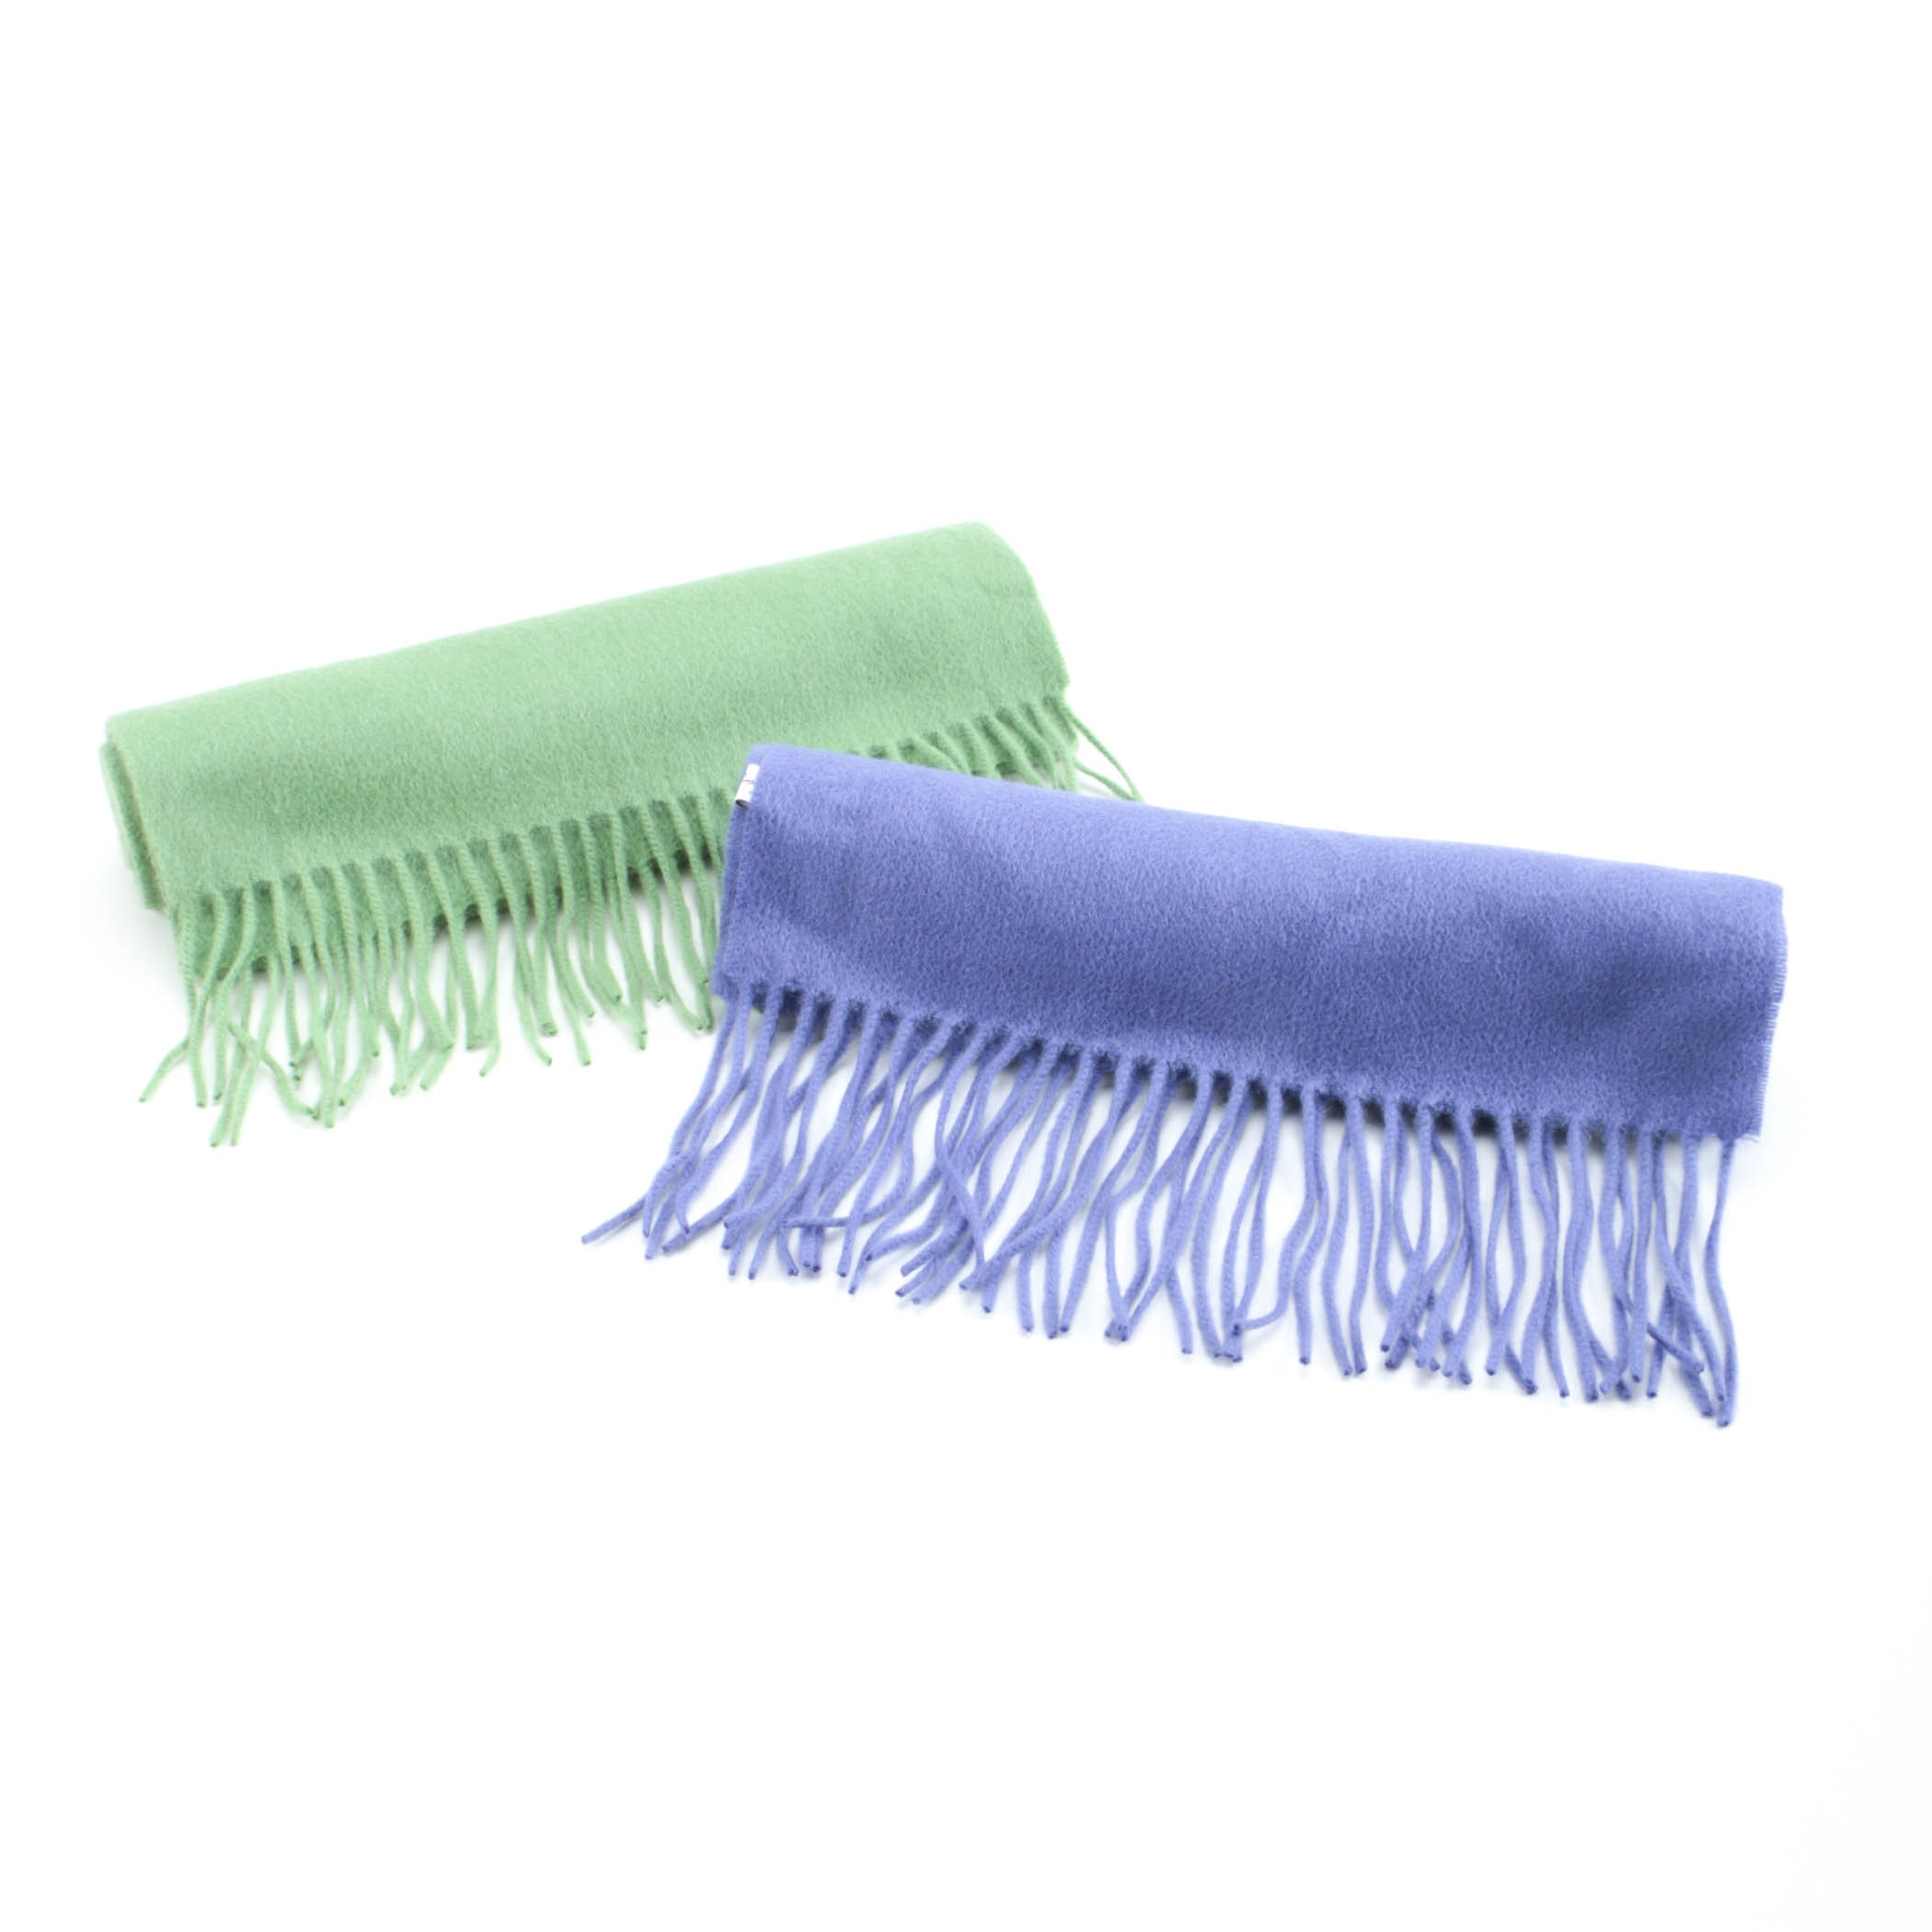 A pair of Cashmere Scarves